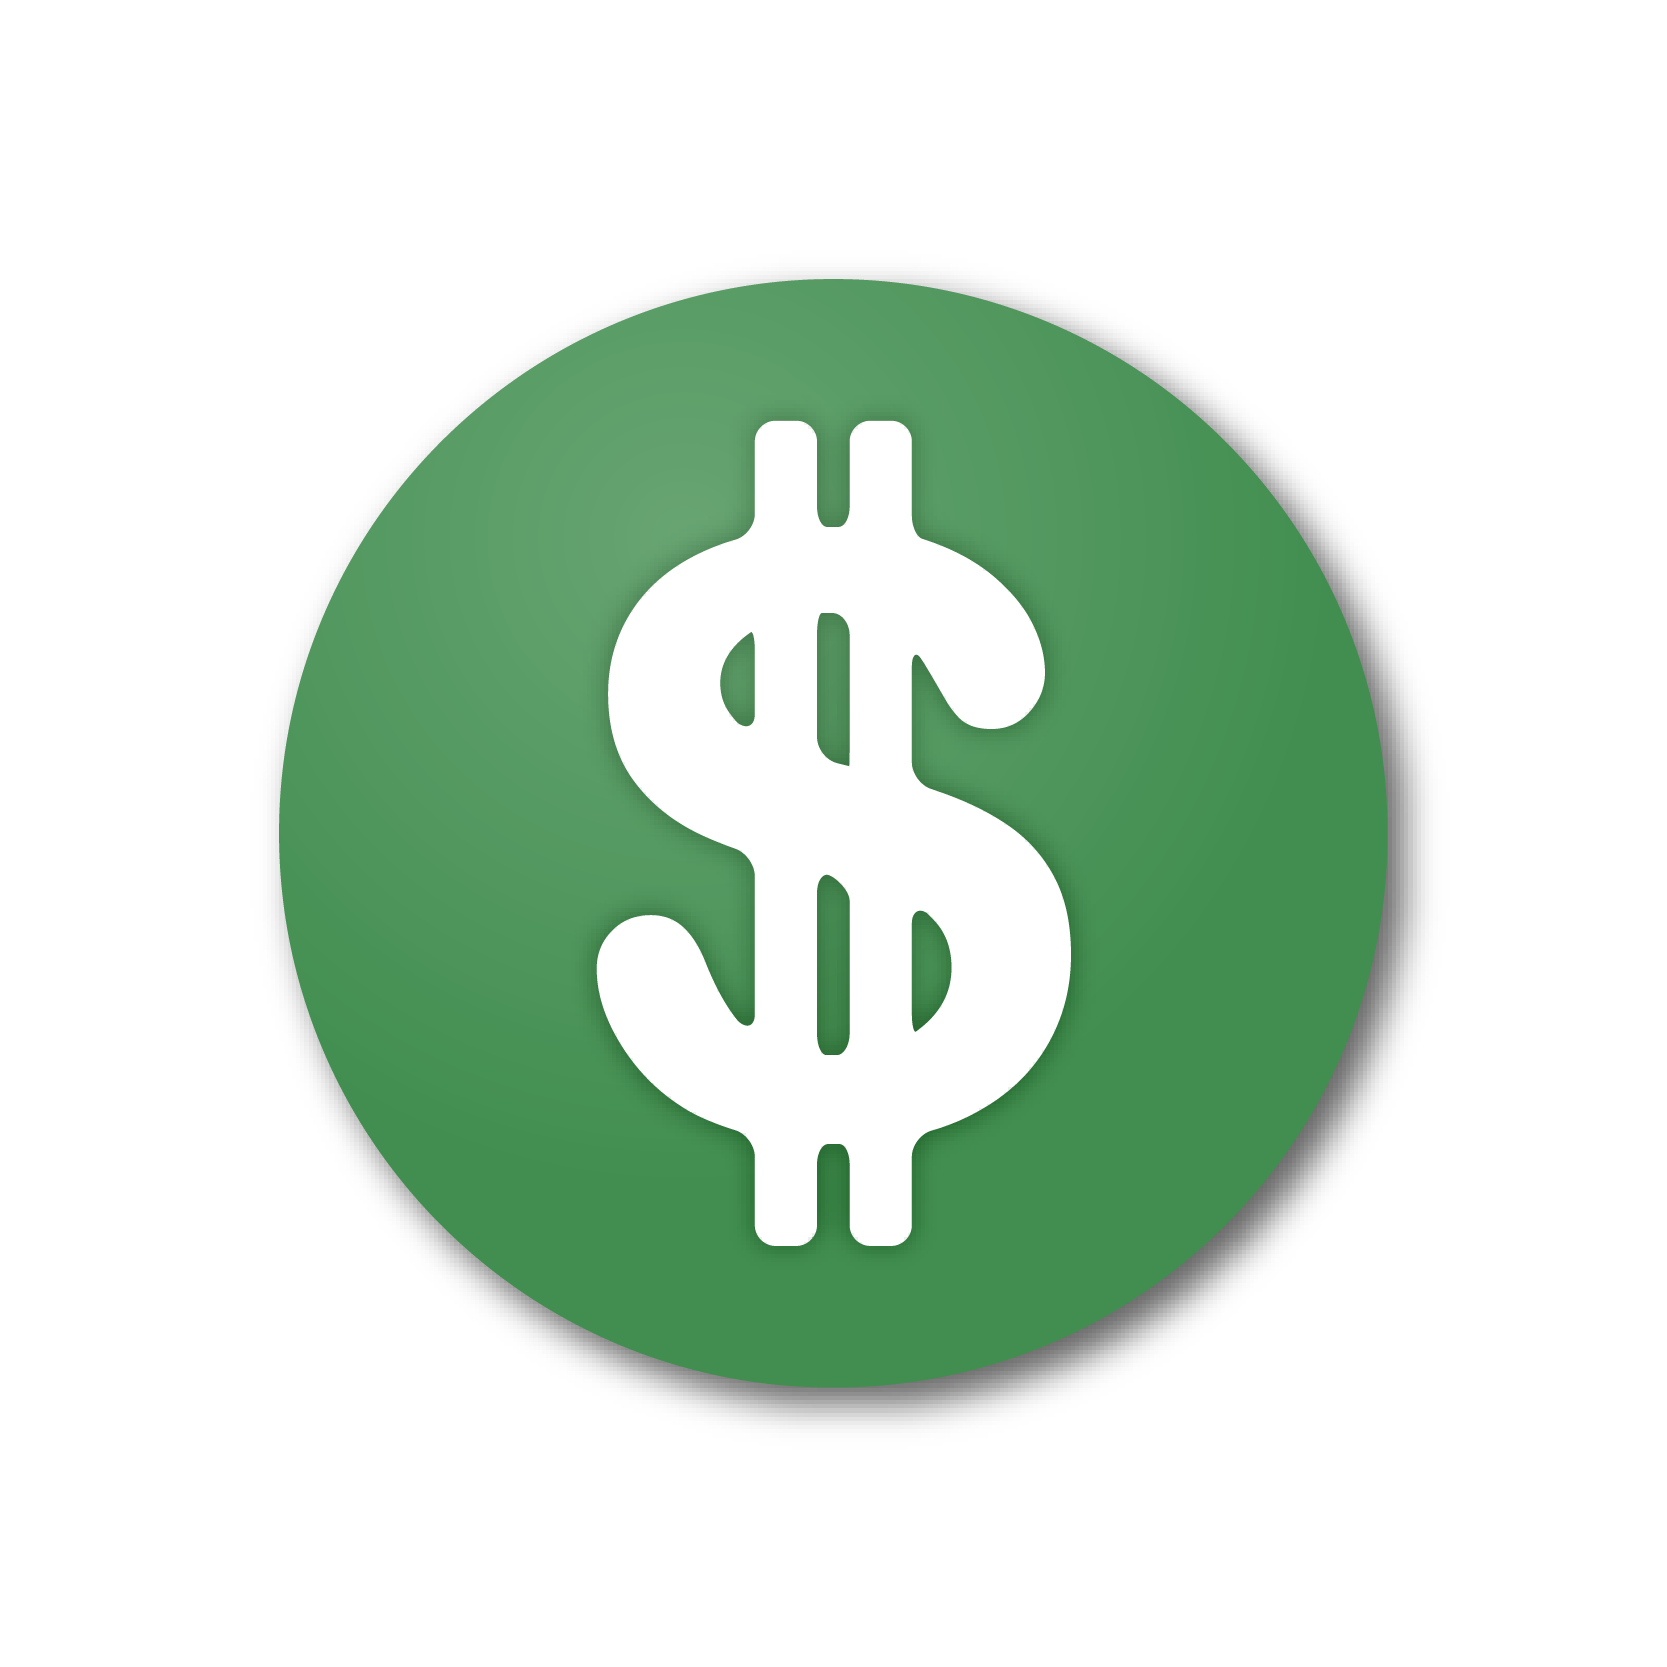 green-money-sign.original.png